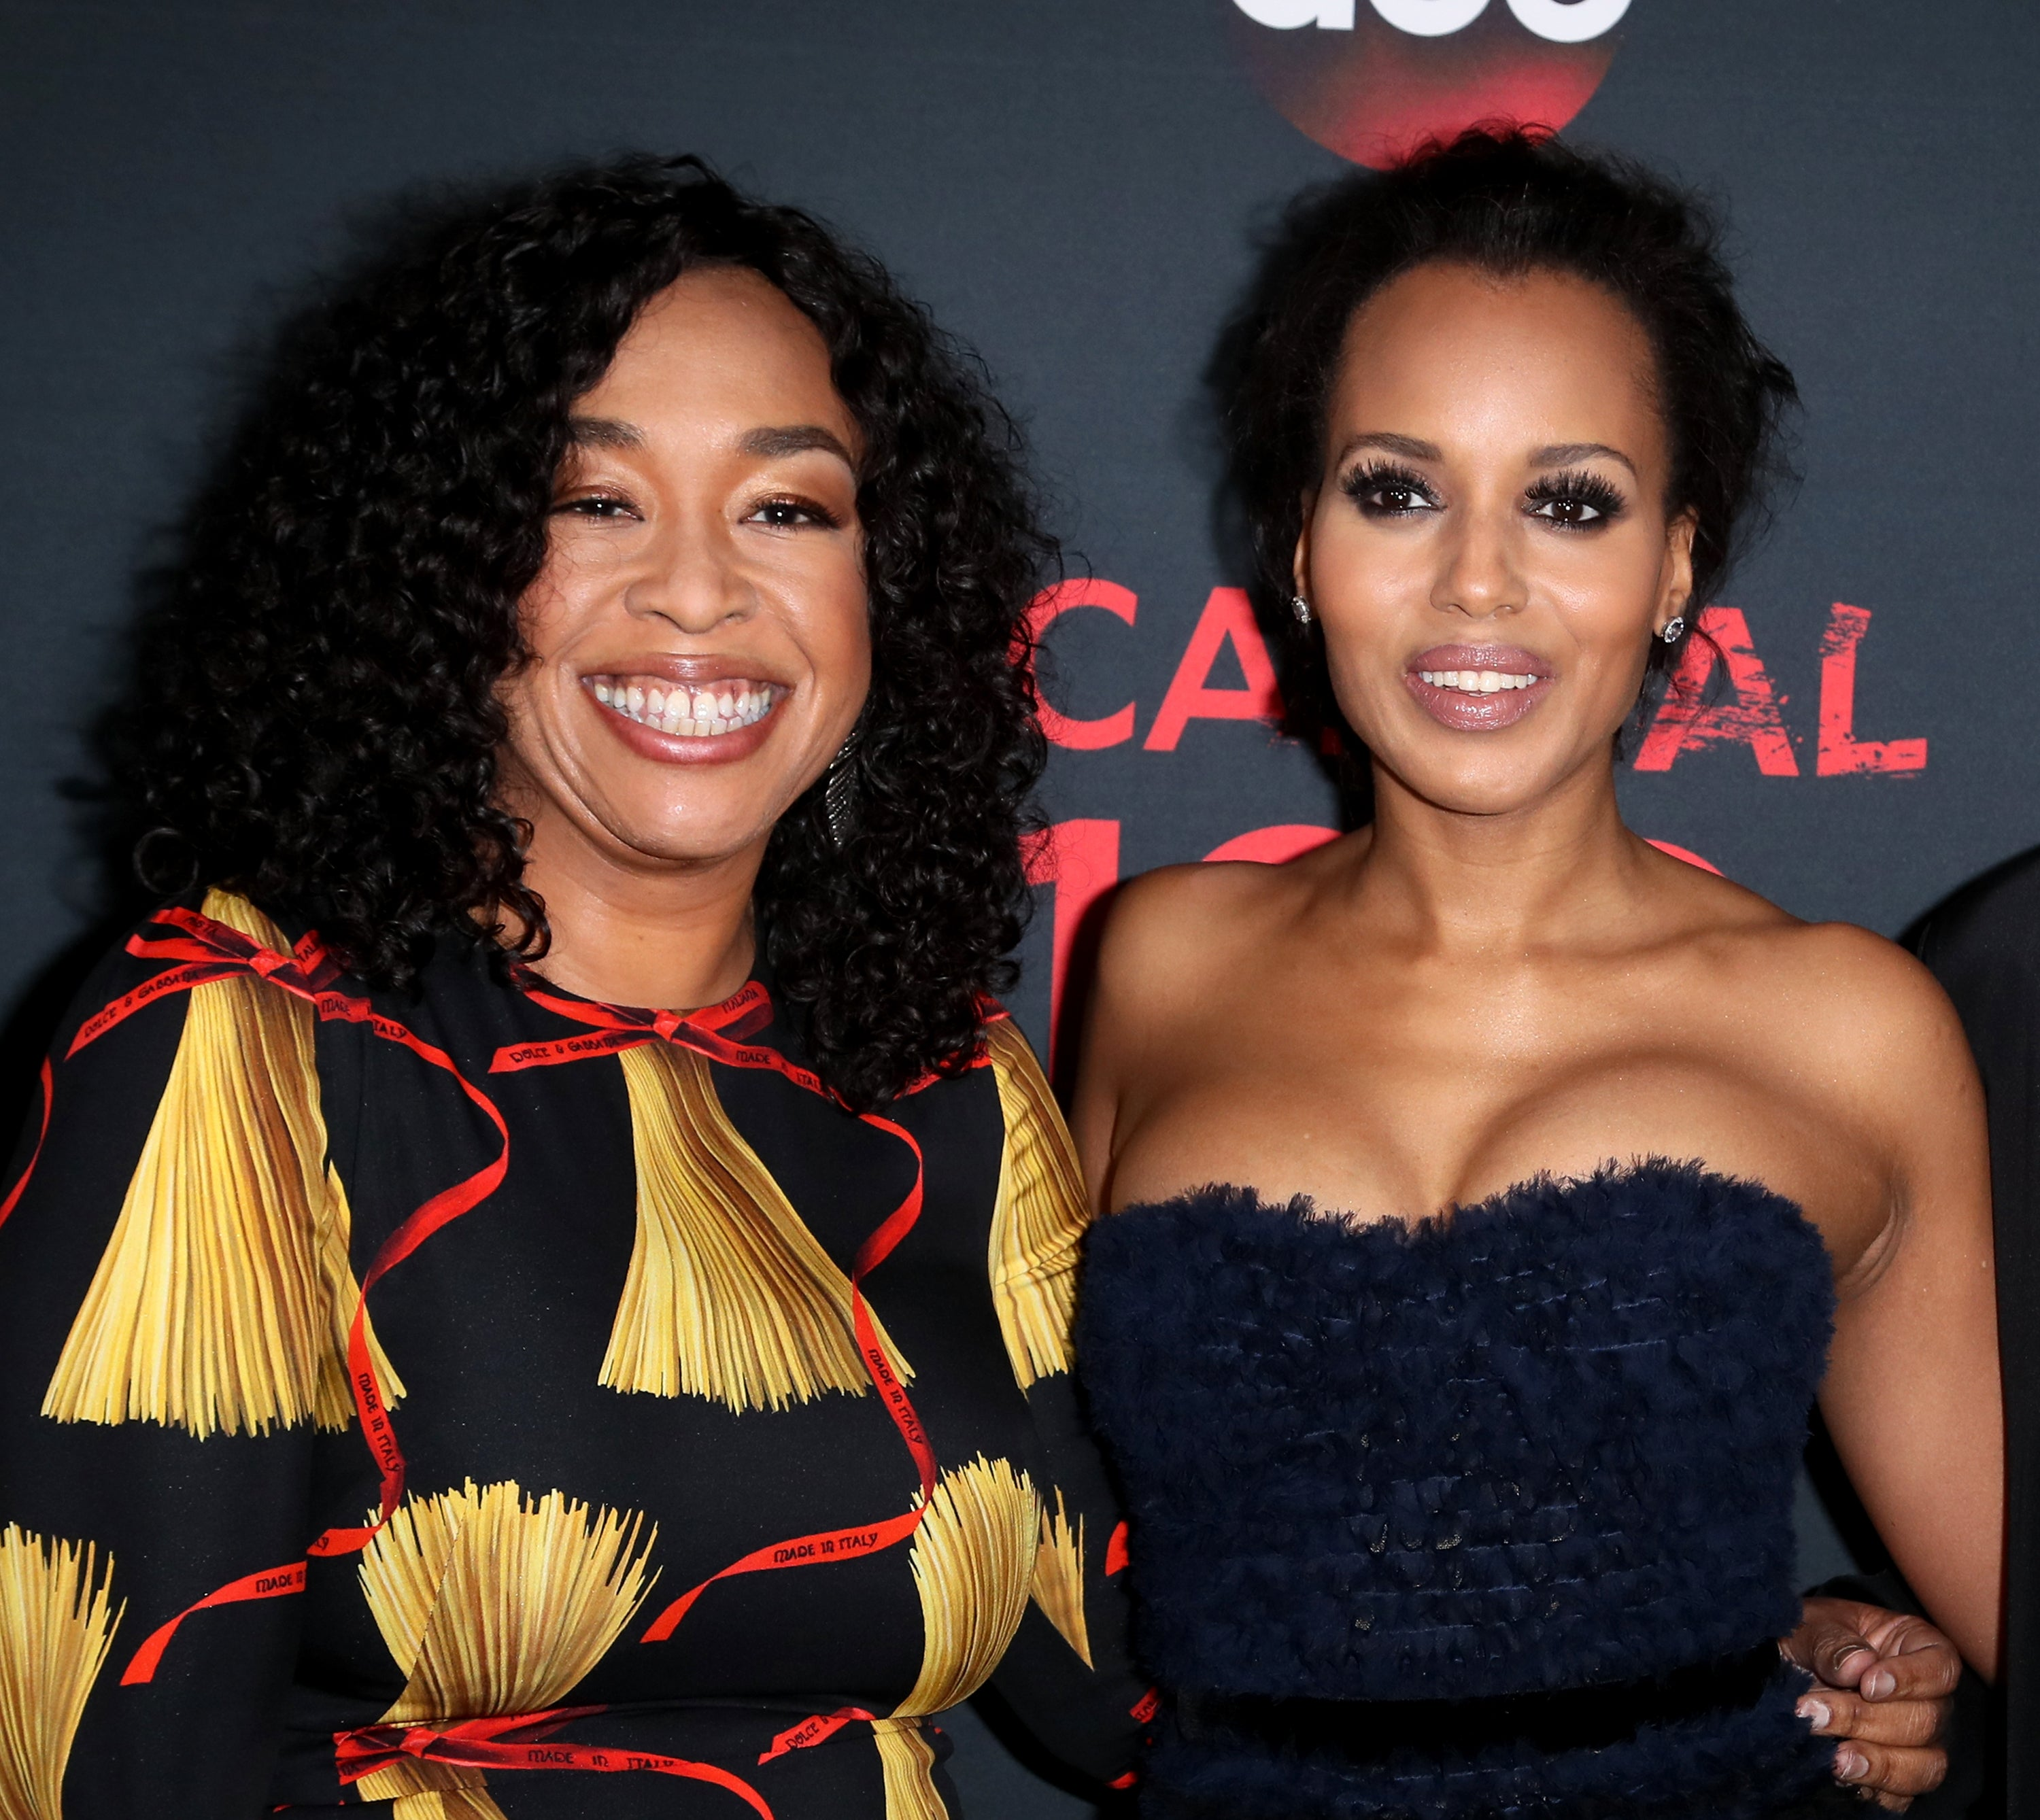 The Scandal Family Is Celebrating 100 Episodes